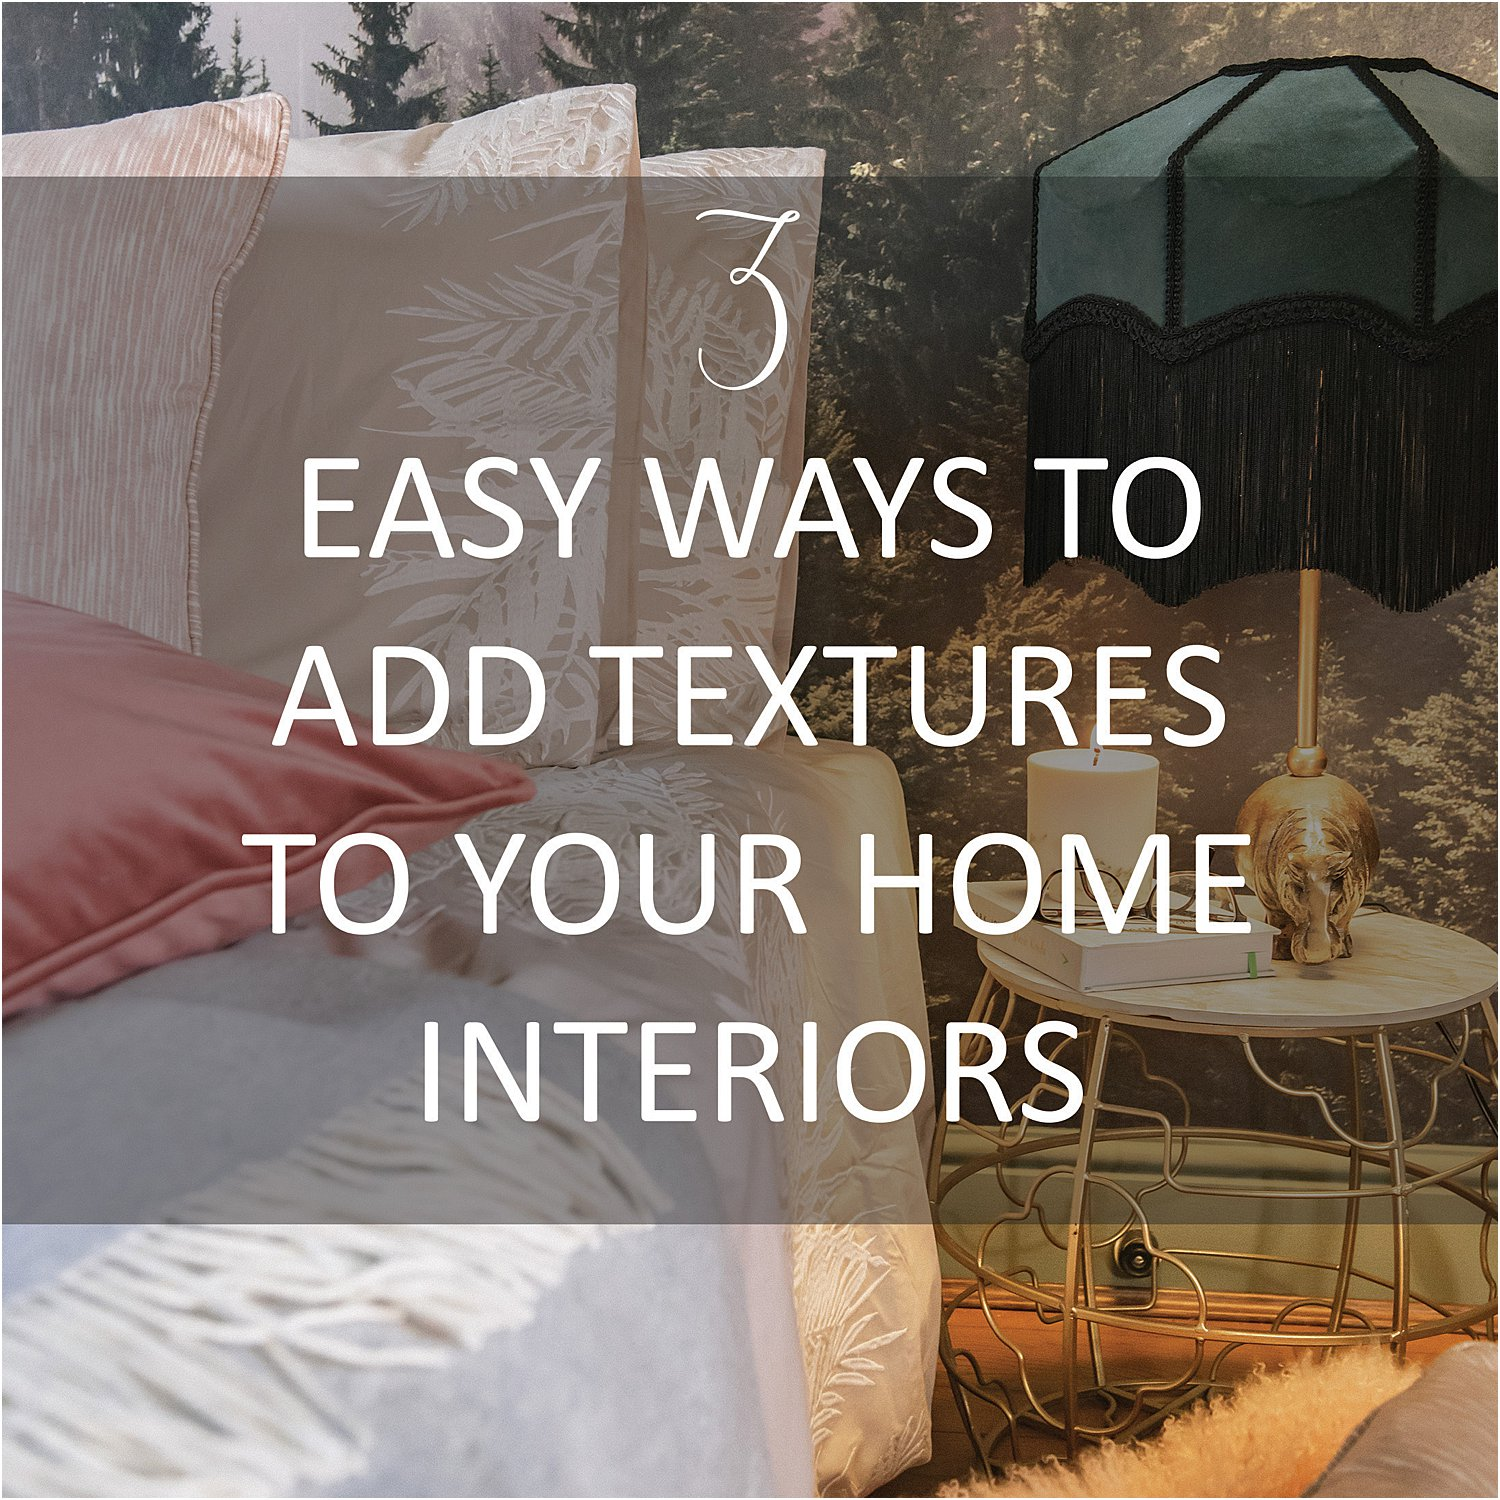 3-easy-ways-to-add-textures-to-your-home-interiors